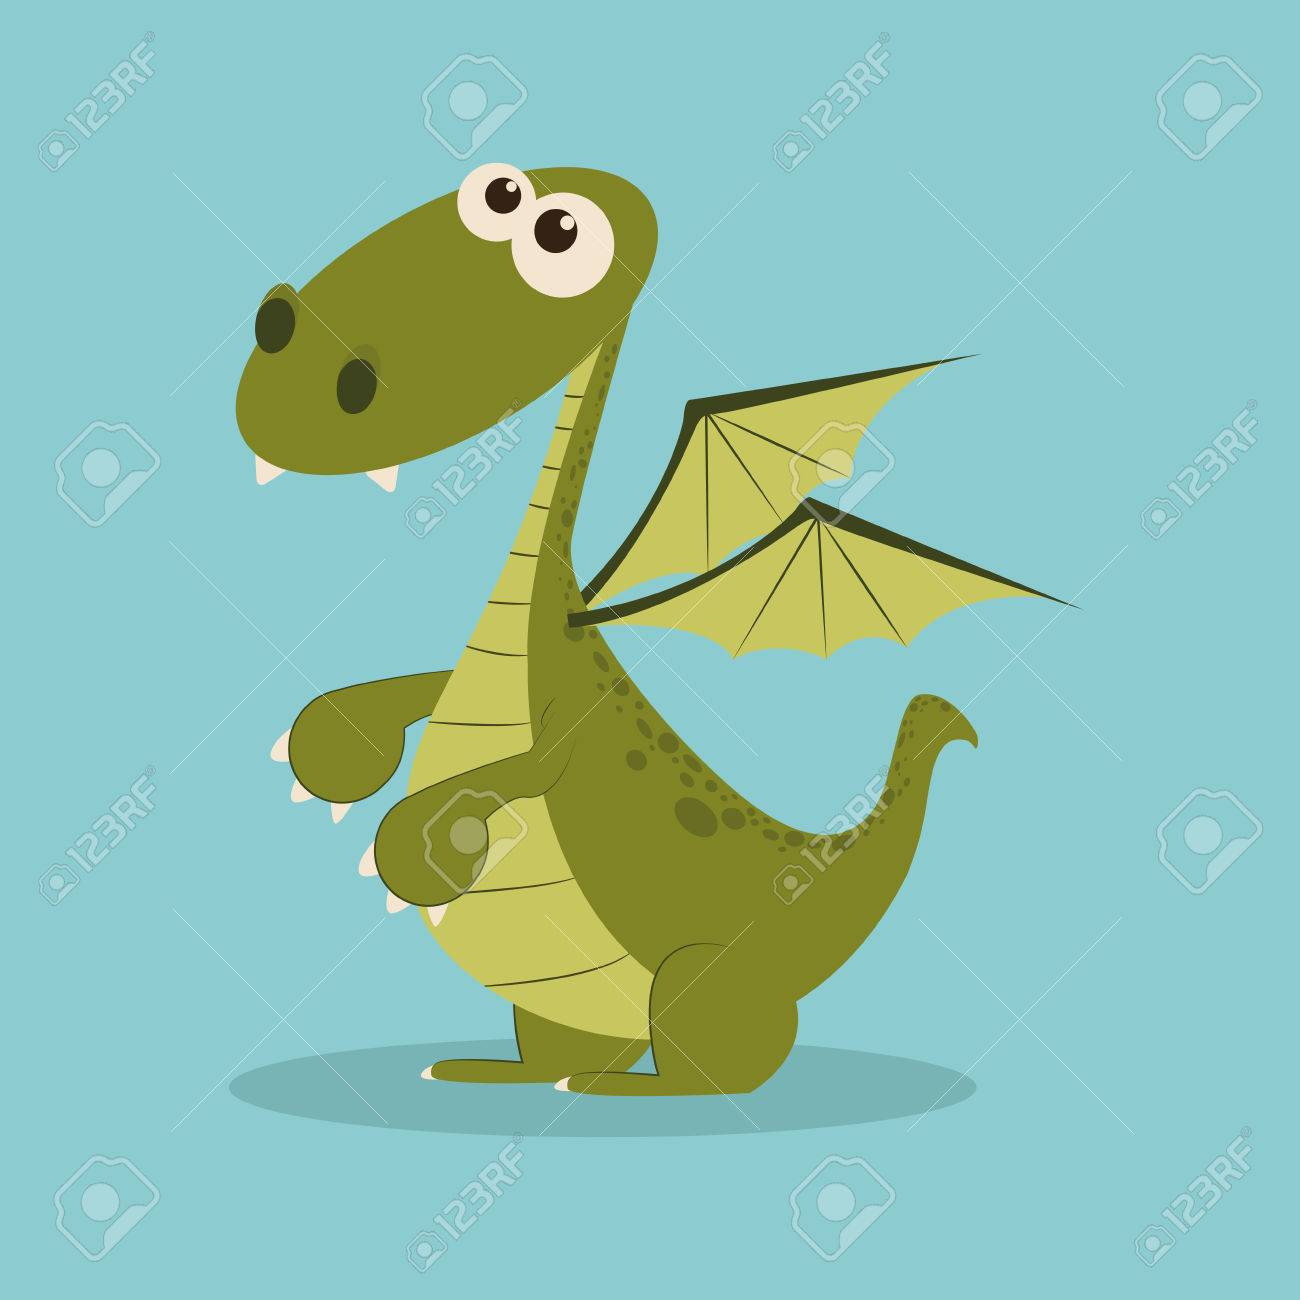 abstract cute dragon on a blue background royalty free cliparts